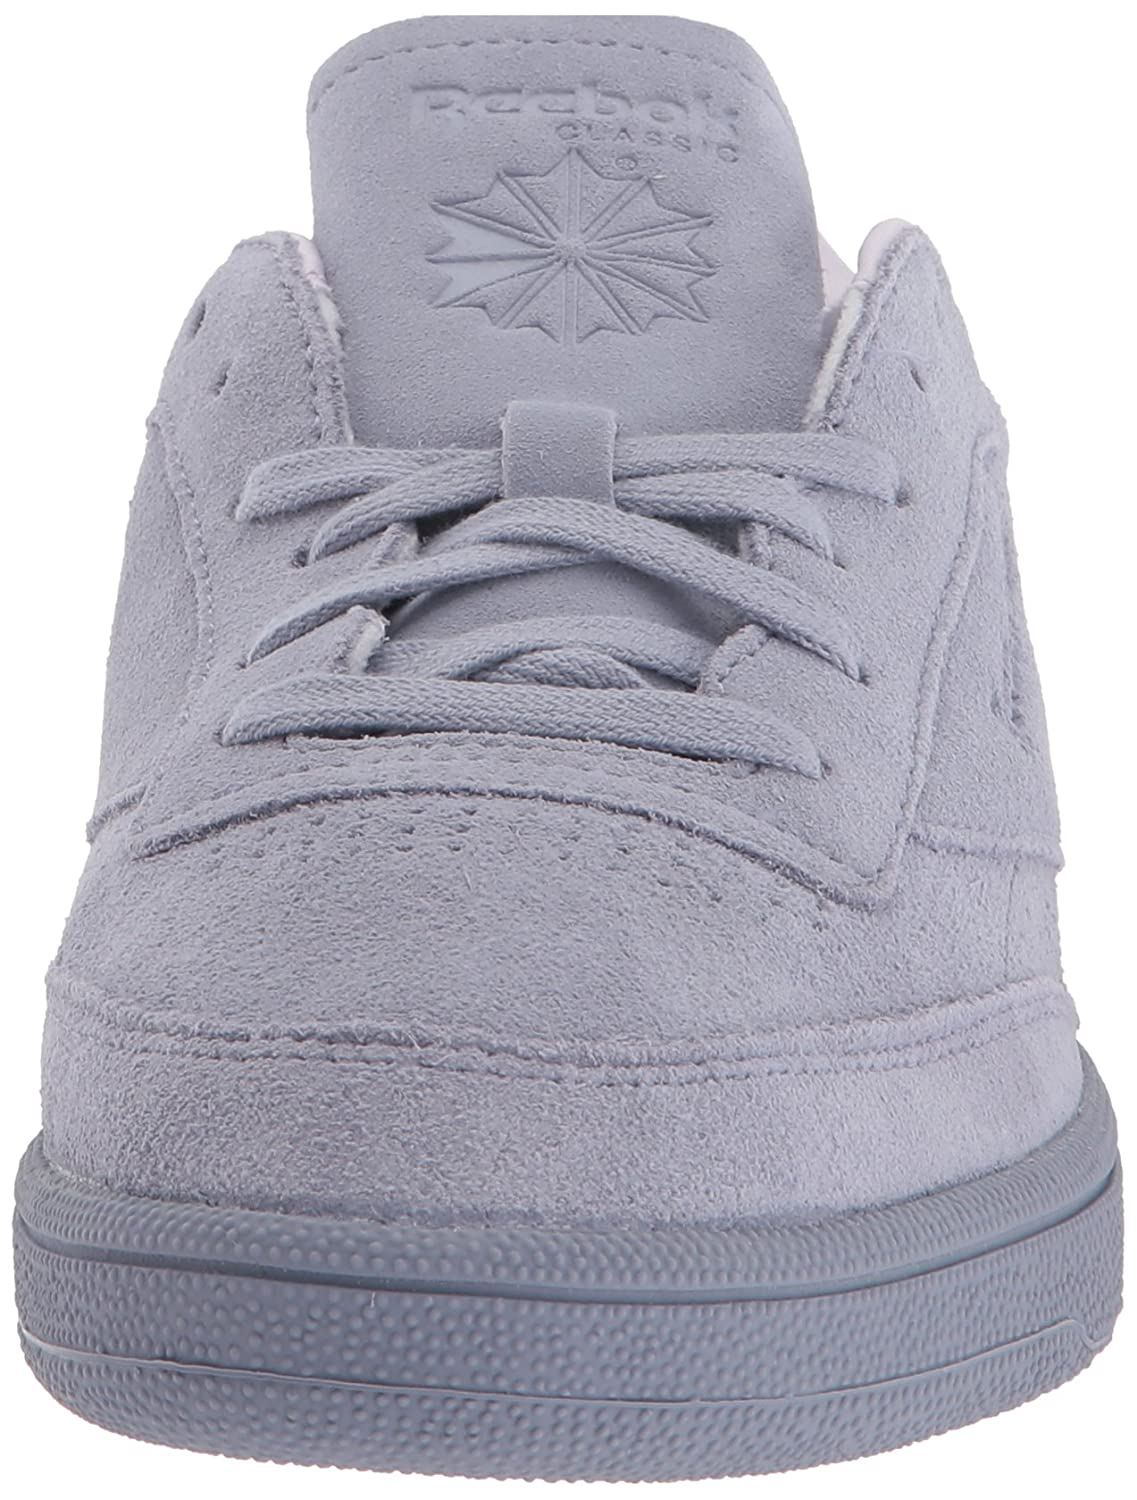 Reebok Women's Club C 85 NBK Sneaker B071WDBBFT 8.5 B(M) US|Purple Fog/Quartz